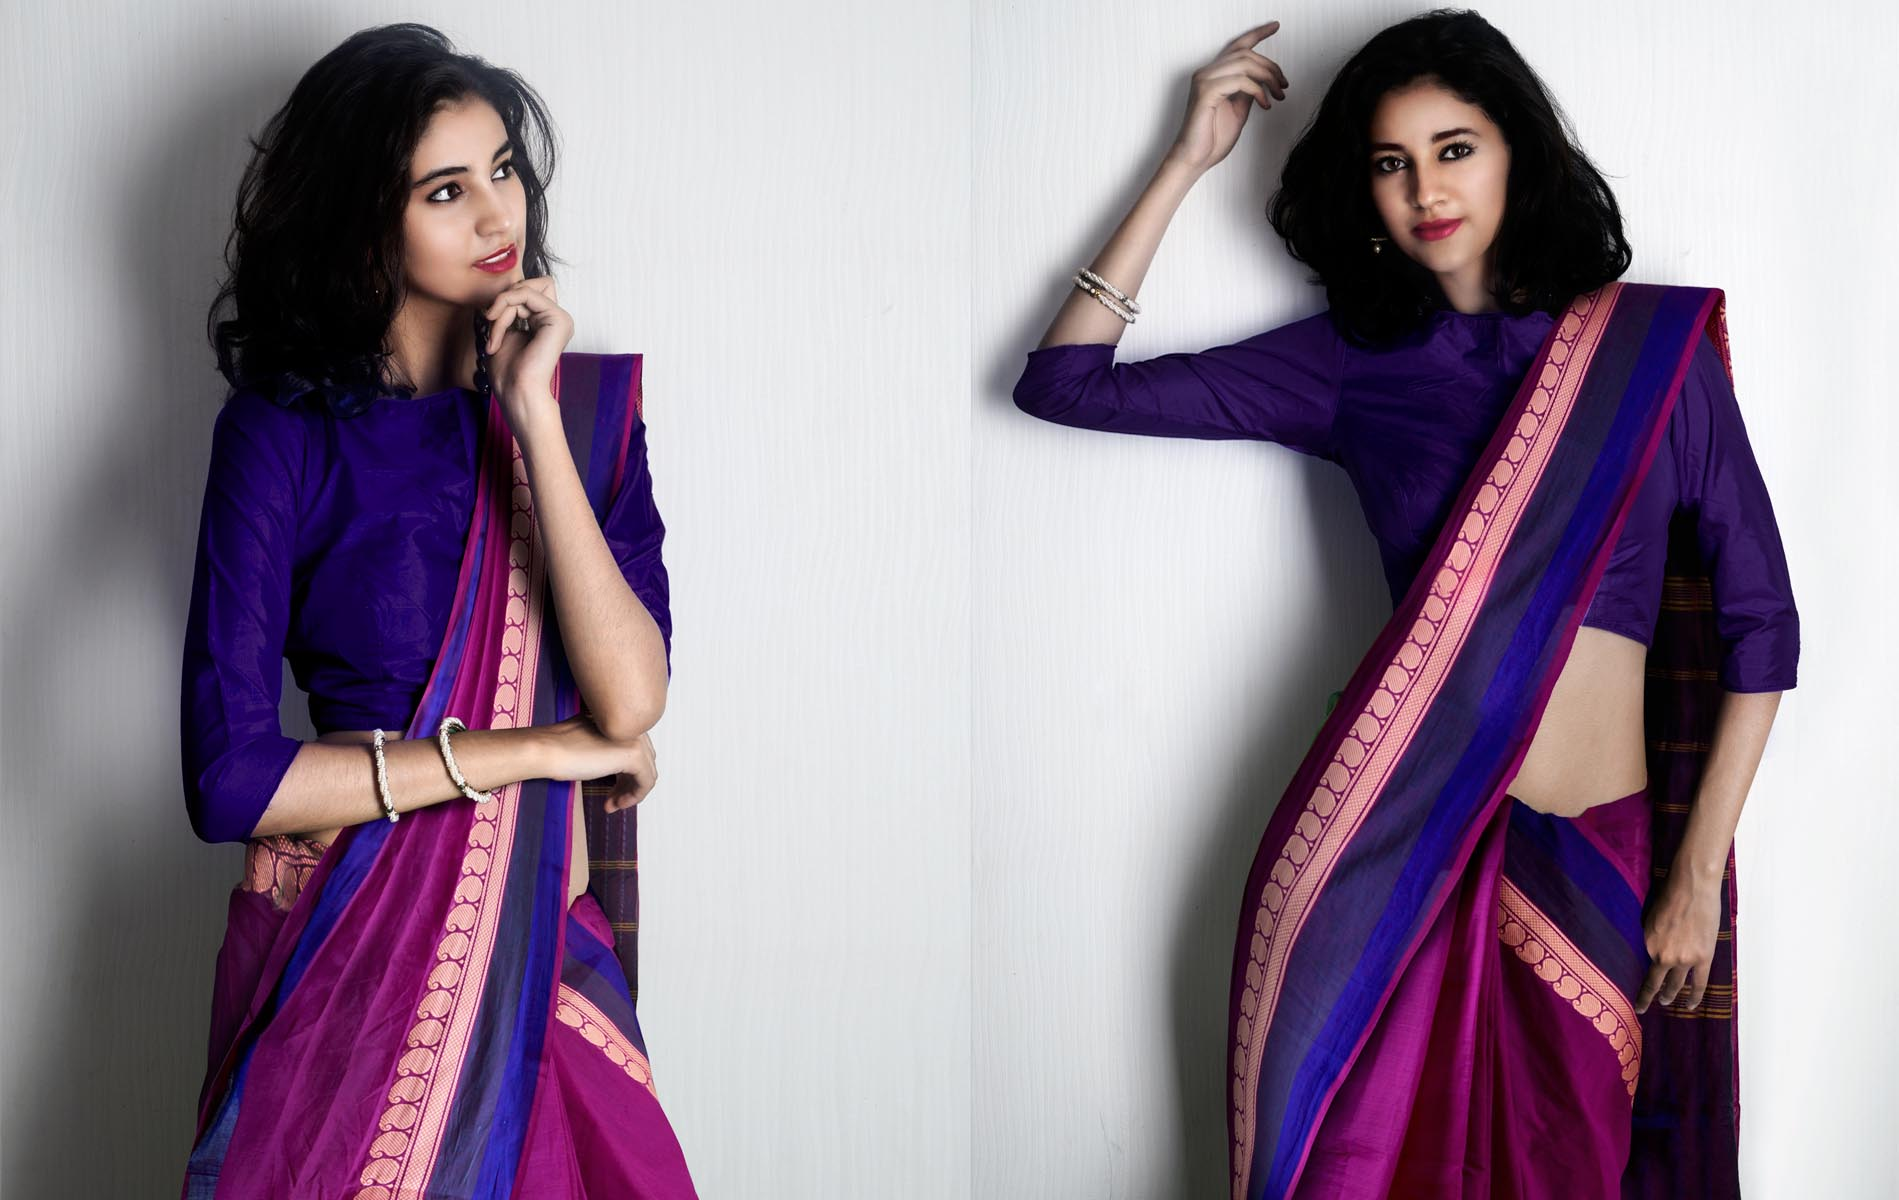 Are you looking for the All Time classic South Handloom Cottons? – Then Chettinad Handloom Sarees are just for you